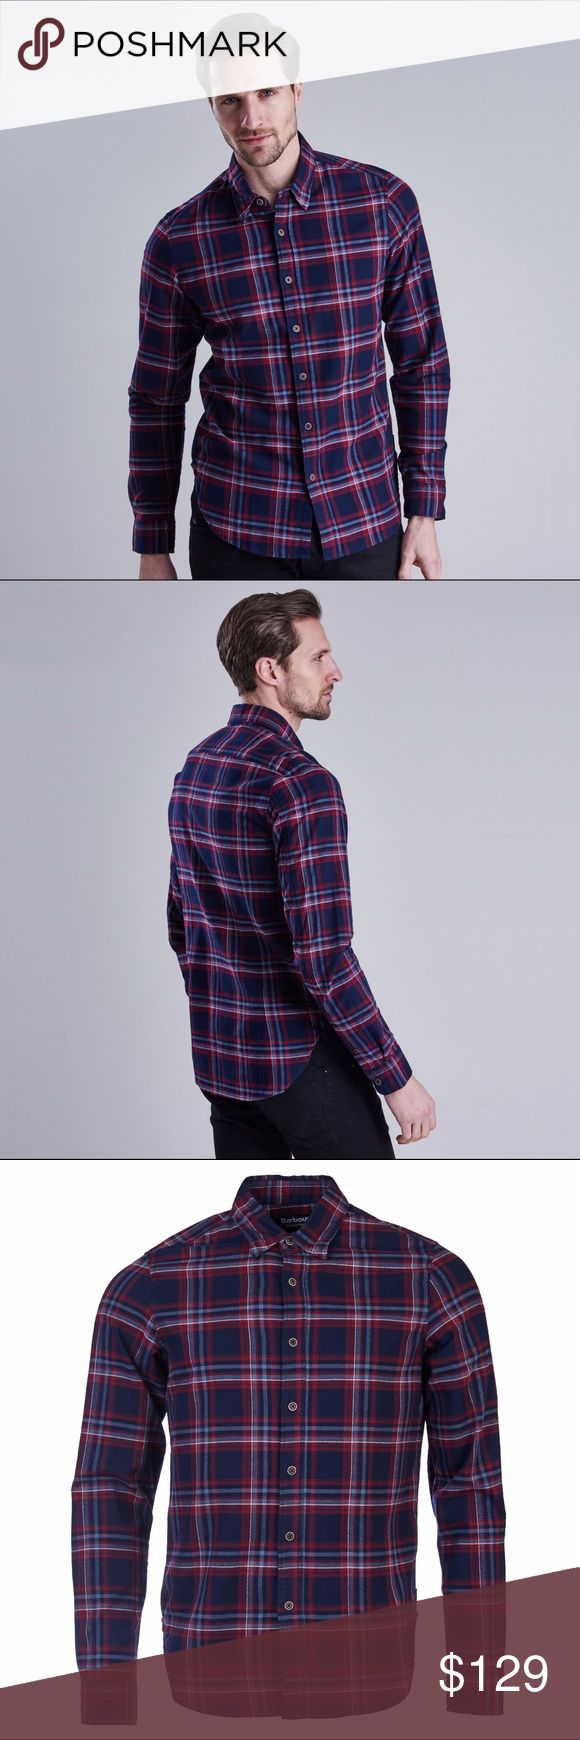 Ashton Kutcher's pick: Barbour Lane Shirt The Barbour International Lane Shirt is made from robust cotton twill with a bold, biker-inspired check design. Its button-down collar and slimmer fit add a modern edge. 100% cotton twill Slim block. If your brand new Barbour shirt doesn't fit perfectly, Barbour will be happy to exchange it for you for a different size. Open up an support case via the Support Center in the Poshmark app, to start the exchange process. Please note, exchanges are only…